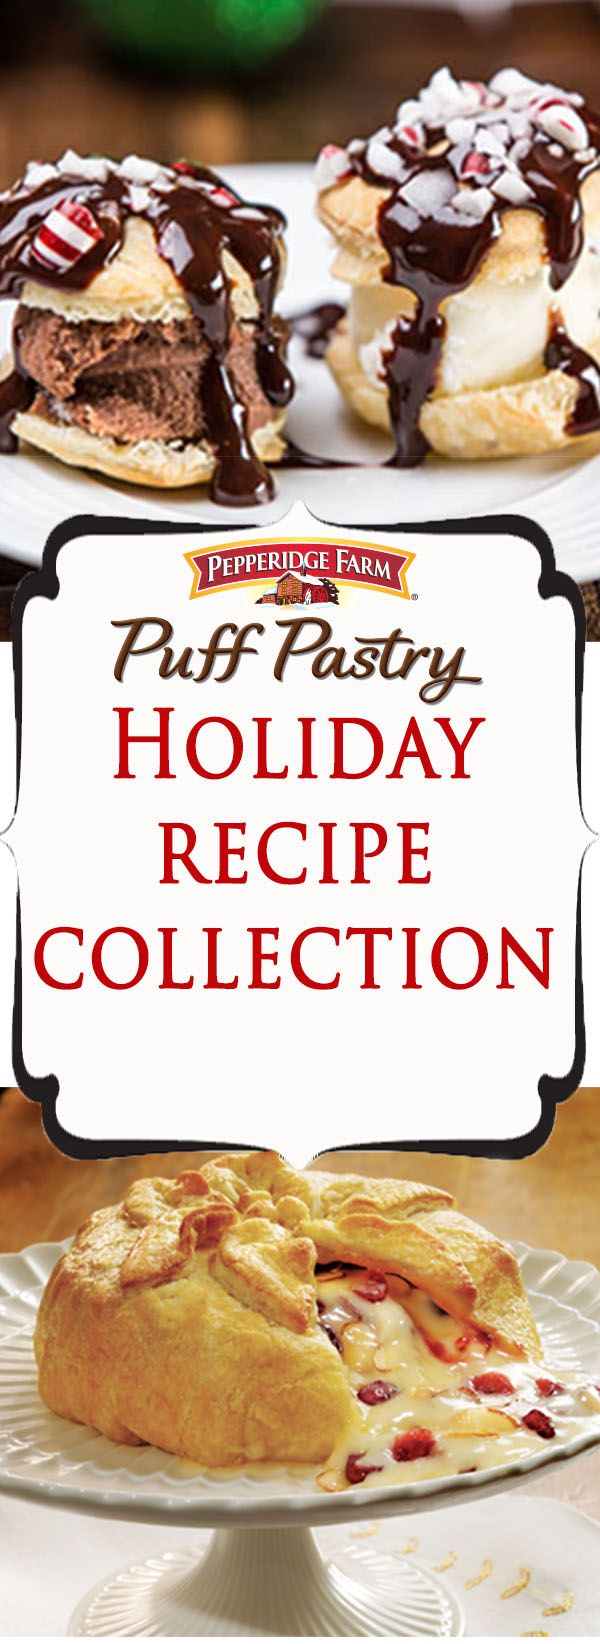 Pepperidge Farm Puff Pastry Holiday Recipe Collection. Festive, impressive recipes that make any holiday gathering or party even more special. Find all the inspiration you need with this list full of appetizers, sides and desserts. Featuring seasonal ingr